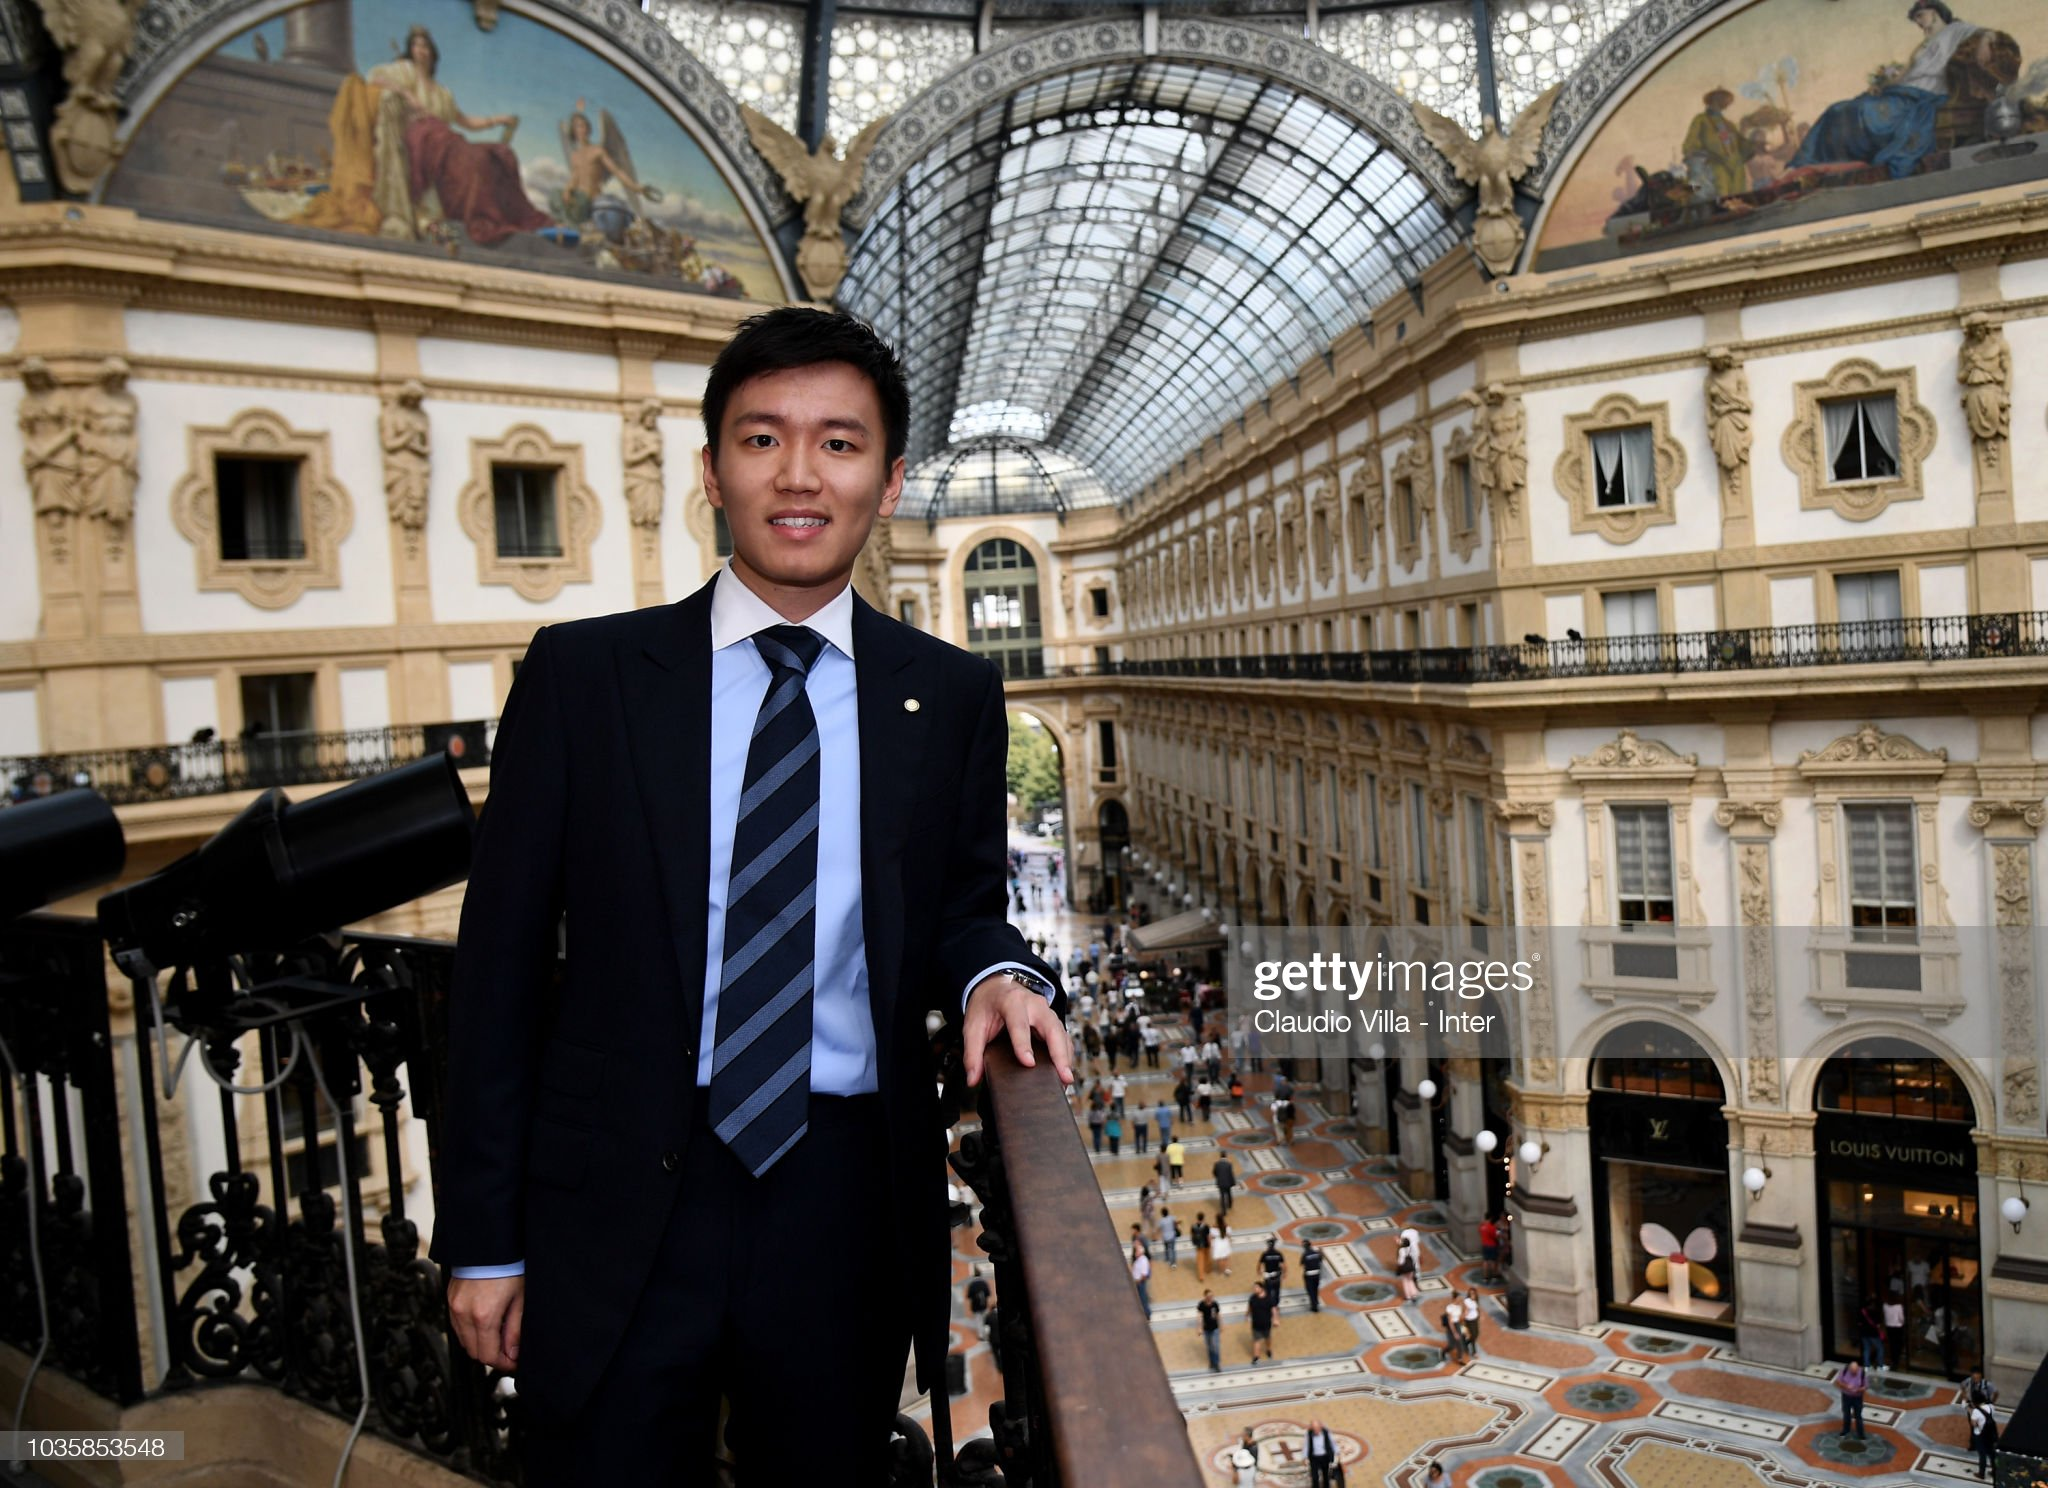 ¿Cuánto mide Steven Zhang Kangyang? - Altura - Real height Internazionale-milano-board-member-steven-zhang-kangyang-poses-for-a-picture-id1035853548?s=2048x2048